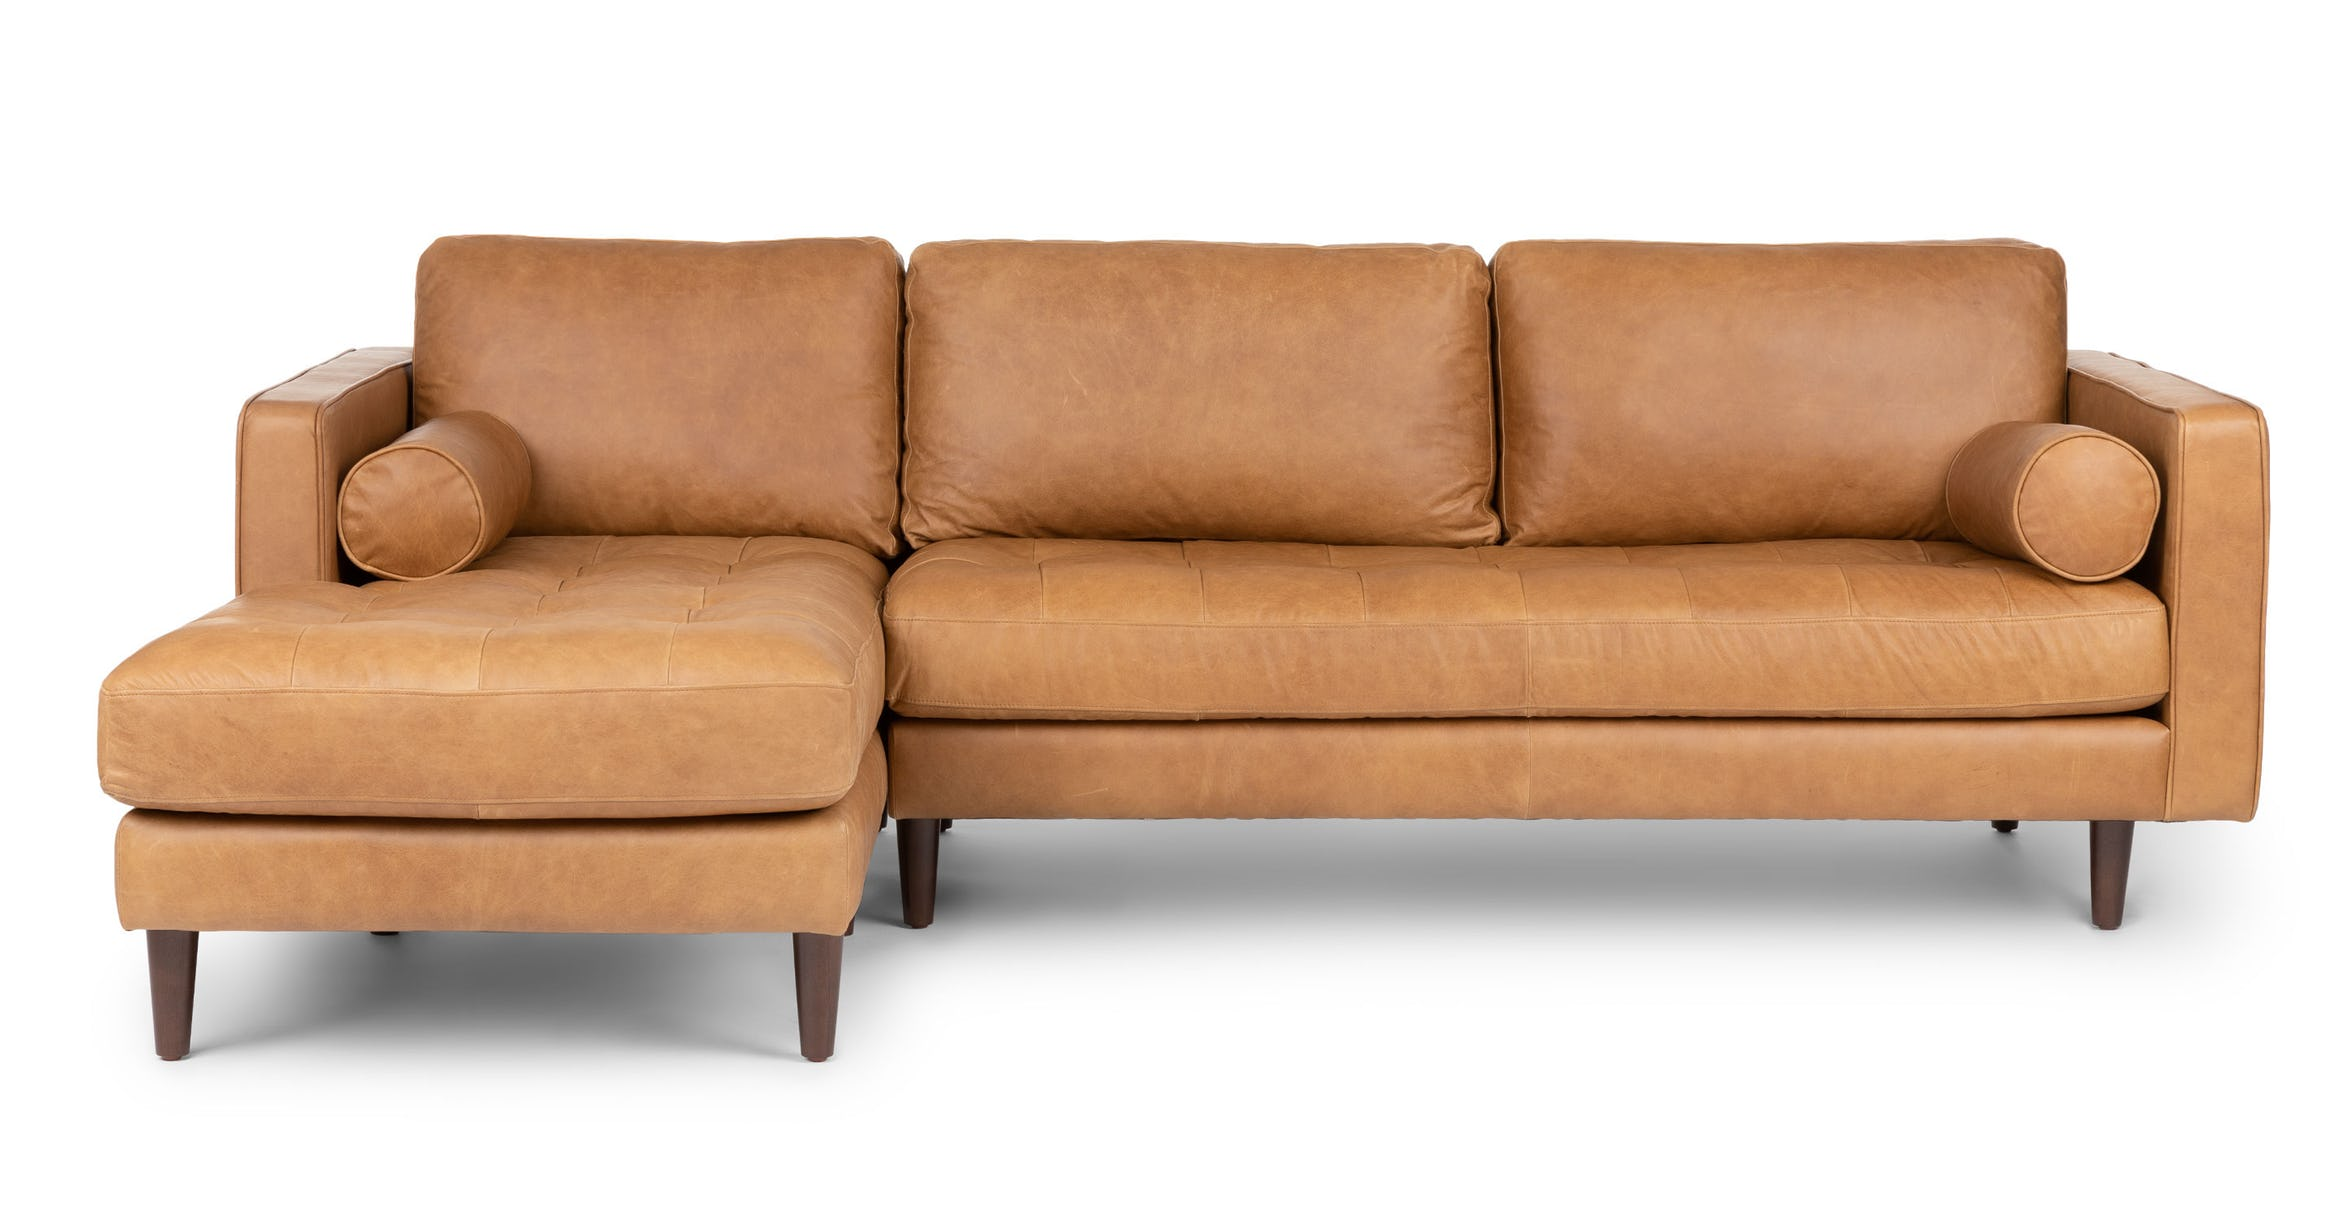 Outstanding Best Sectional Sofas For Every Budget Real Simple Ibusinesslaw Wood Chair Design Ideas Ibusinesslaworg